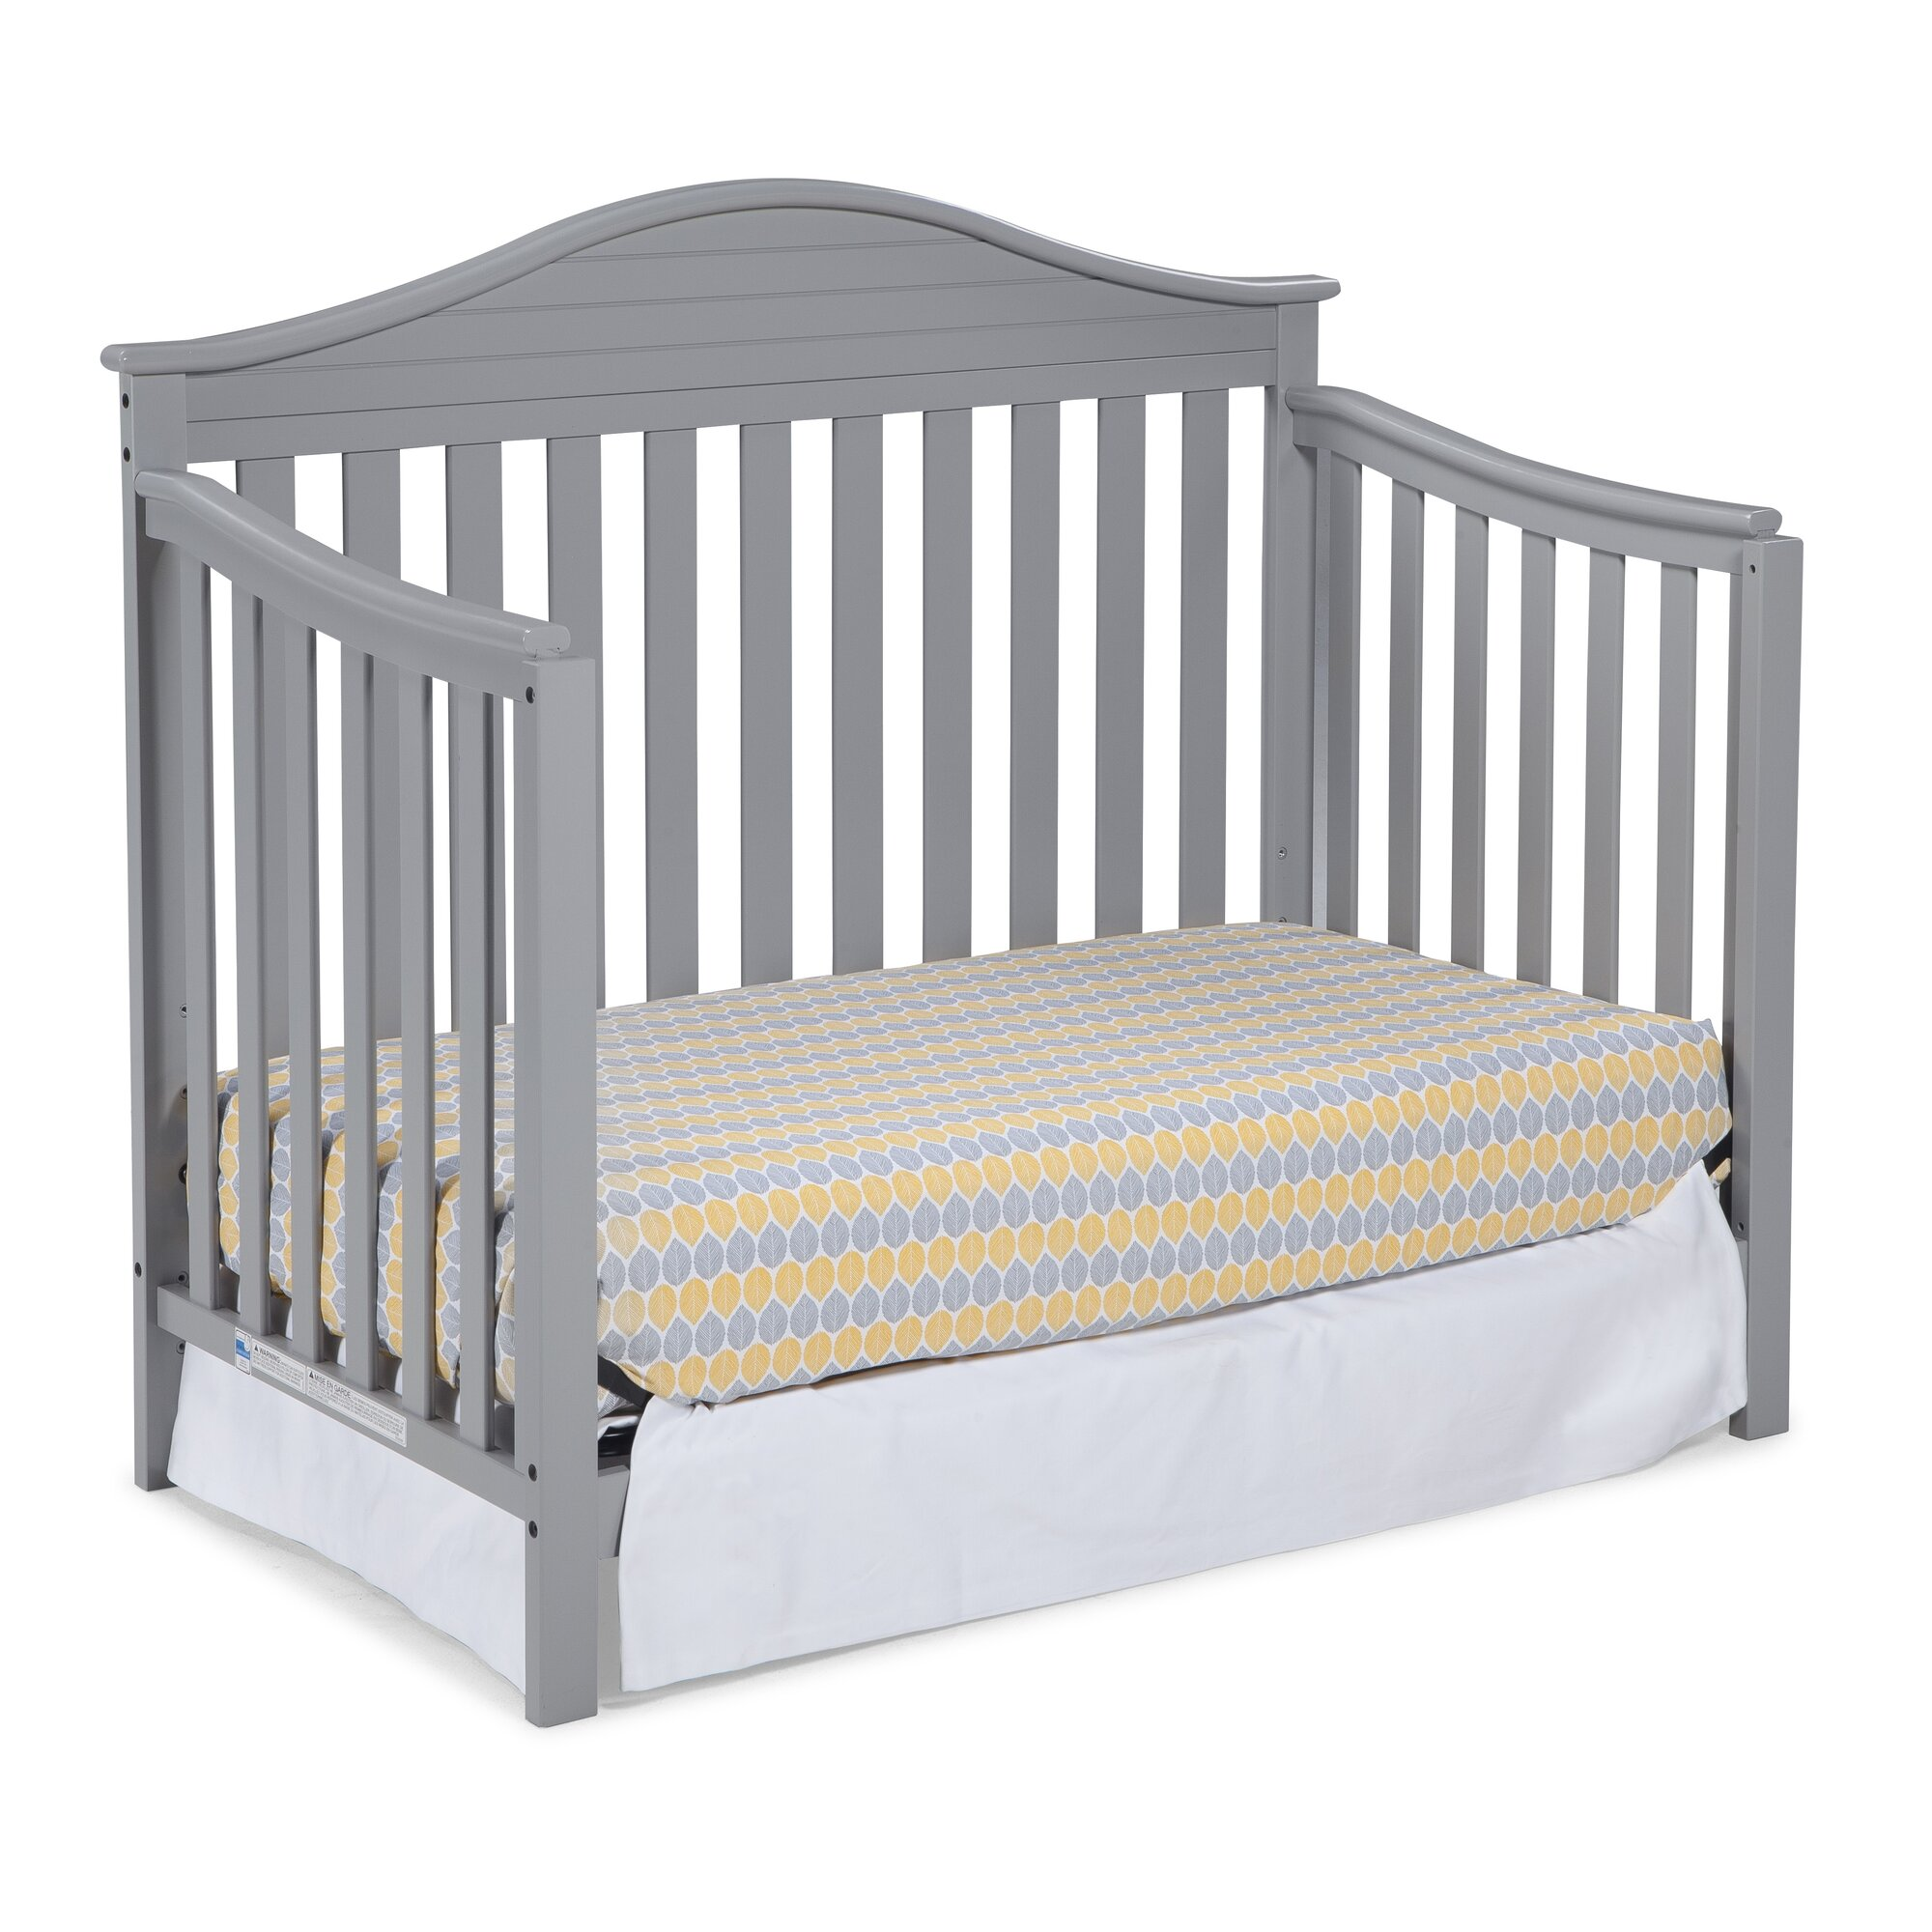 Harbor Lights: Graco Harbor Lights 4-in-1 Convertible Crib & Reviews